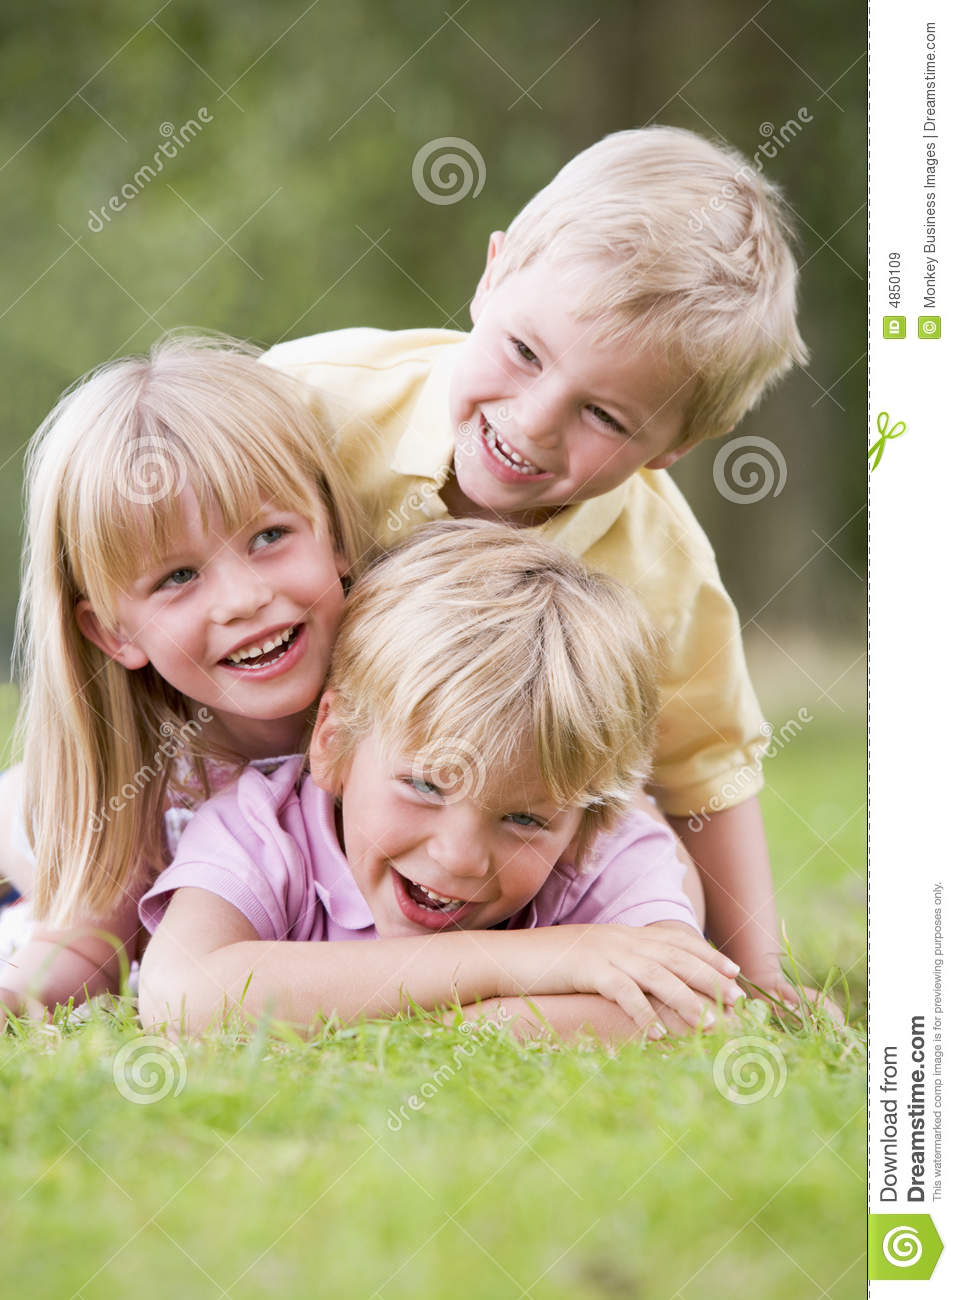 Children Playing Outside Royalty Free Stock Images - Image: 4850109